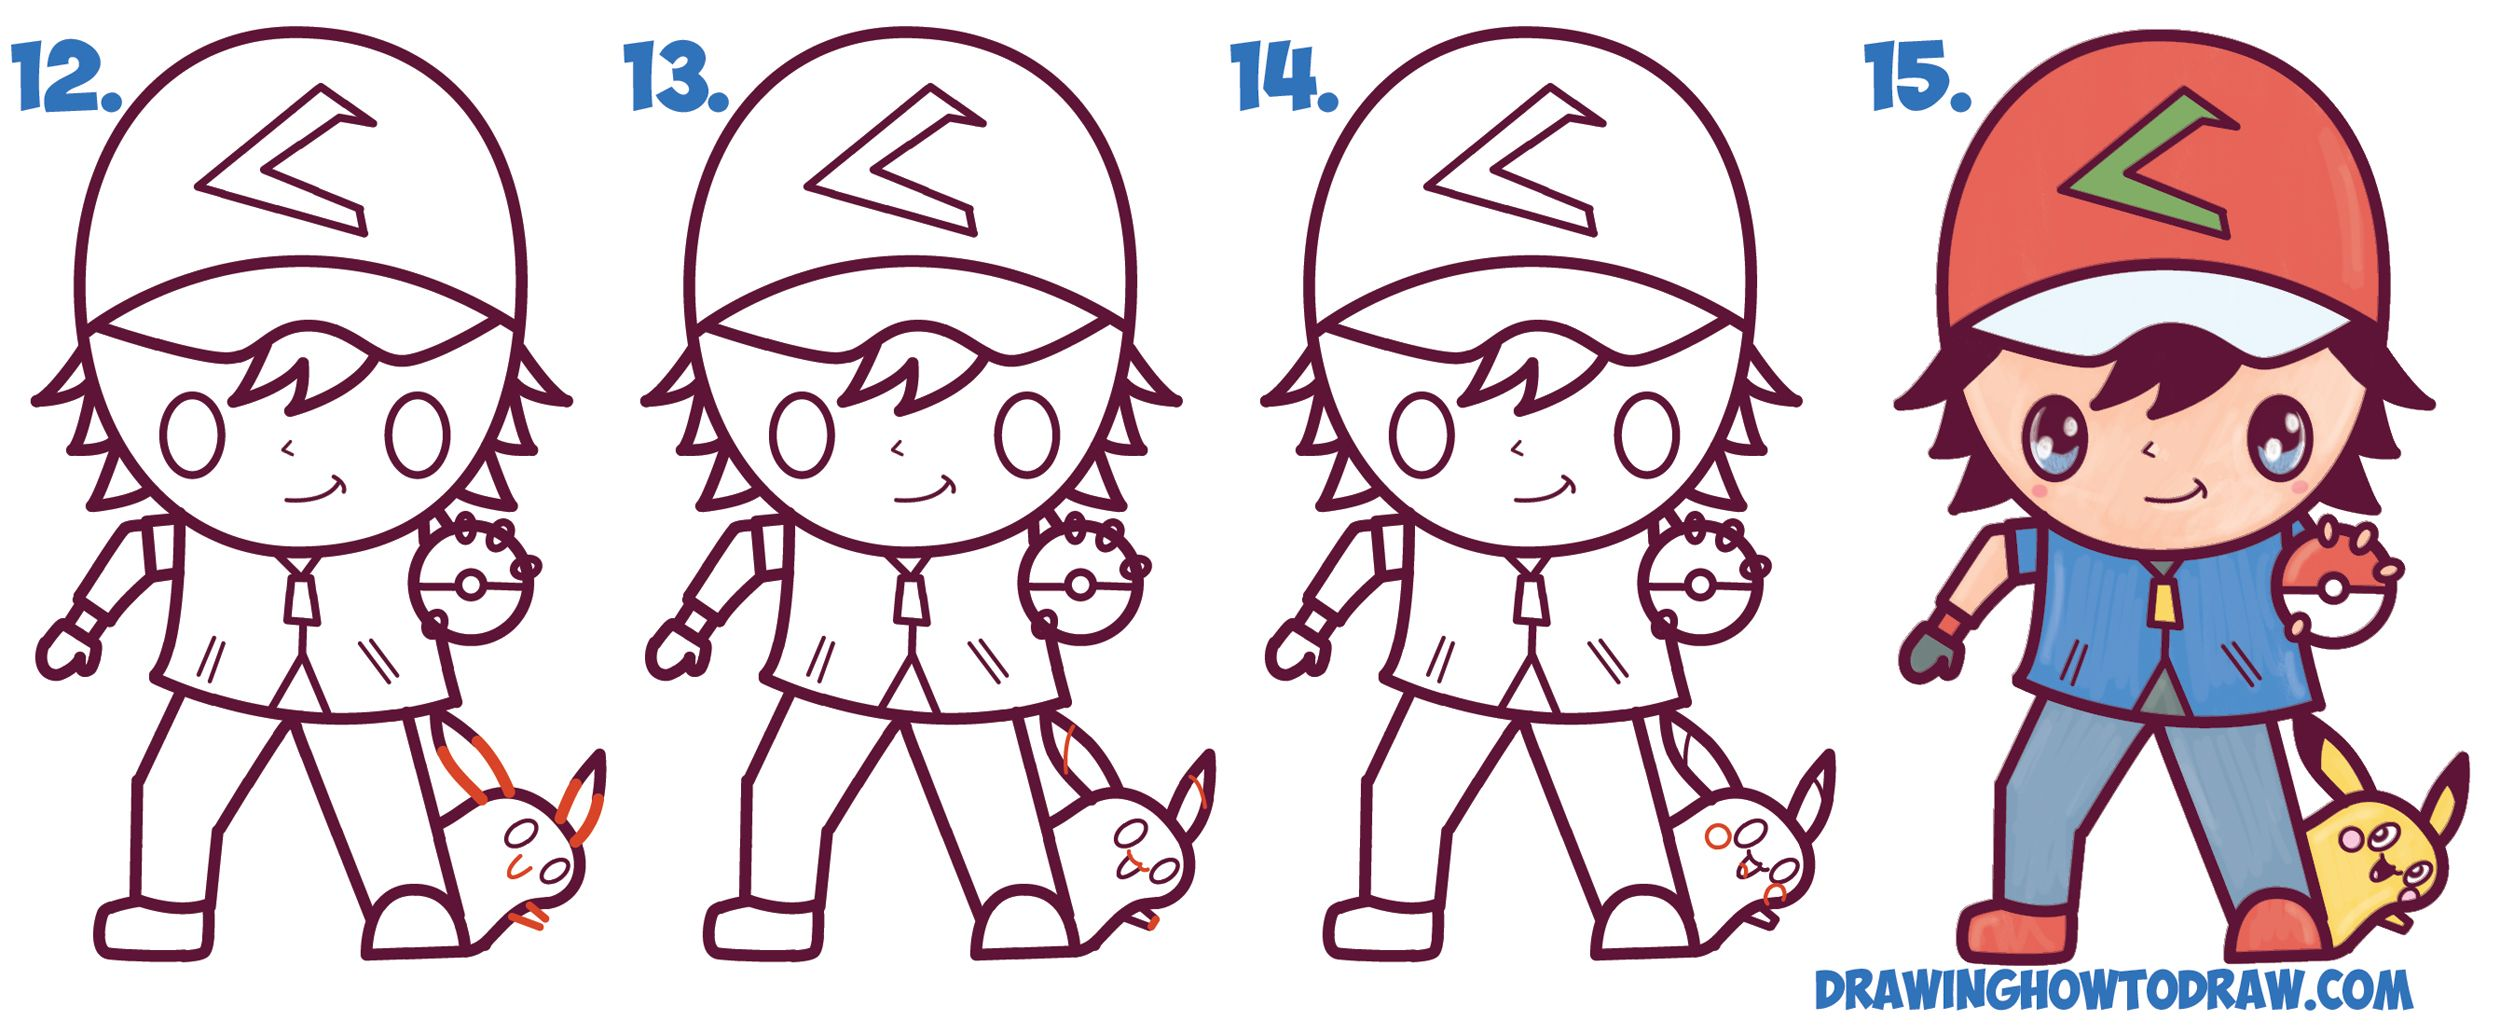 Uncategorized How To Draw Ash From Pokemon learn how to draw cute kawaii chibi ash ketchum and pikachu from pokemon simple steps drawing